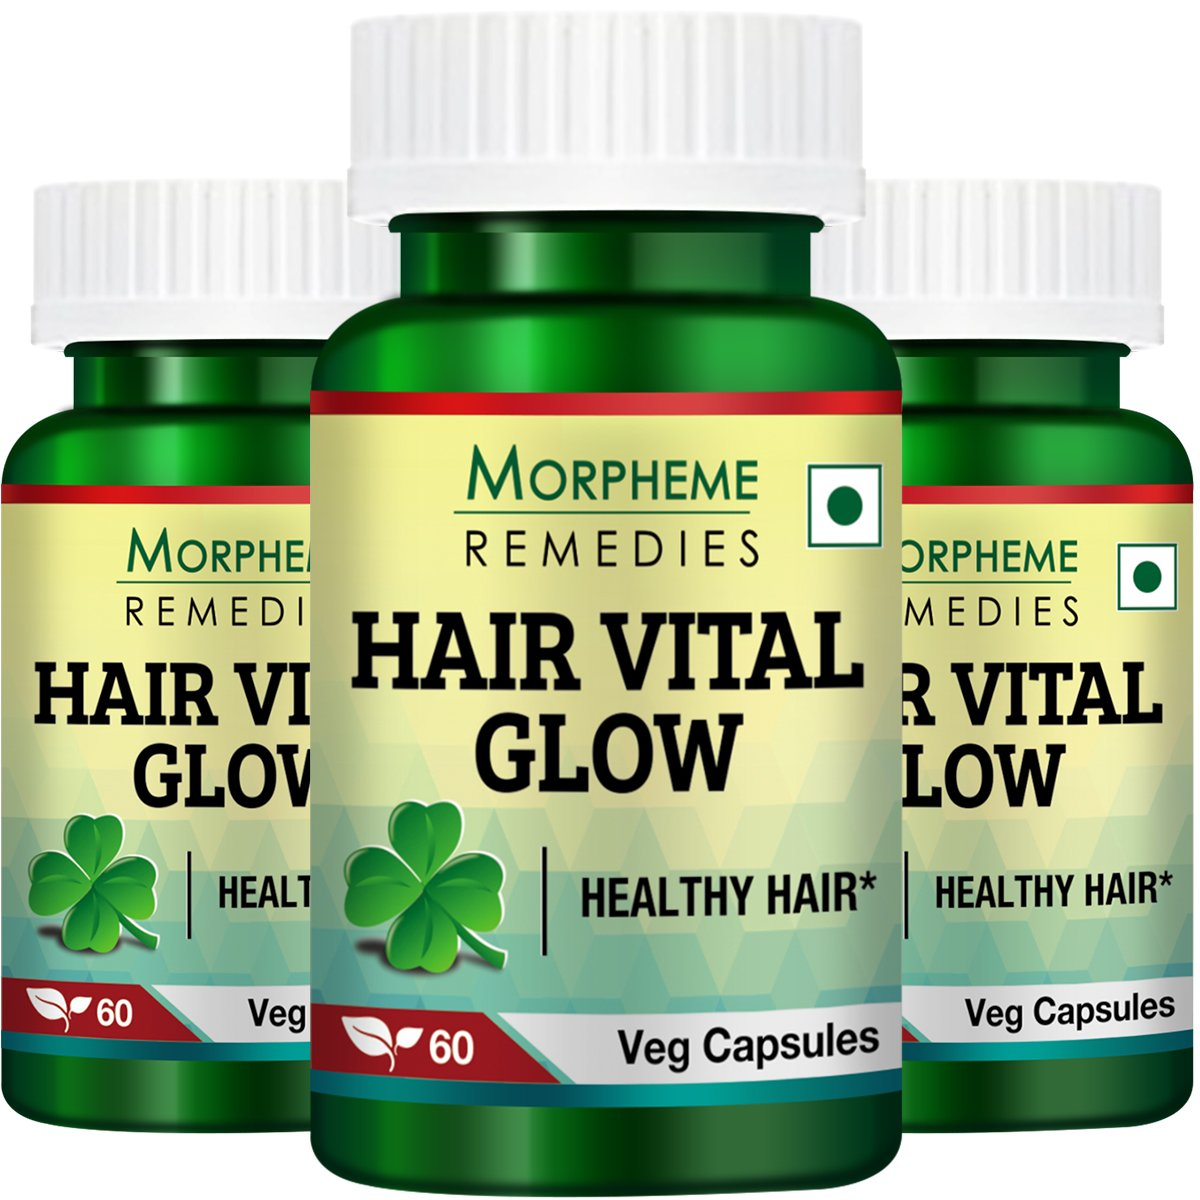 Morpheme Hair Vital Glow 60 Veg Caps - For Hair Health - 3 Bottles